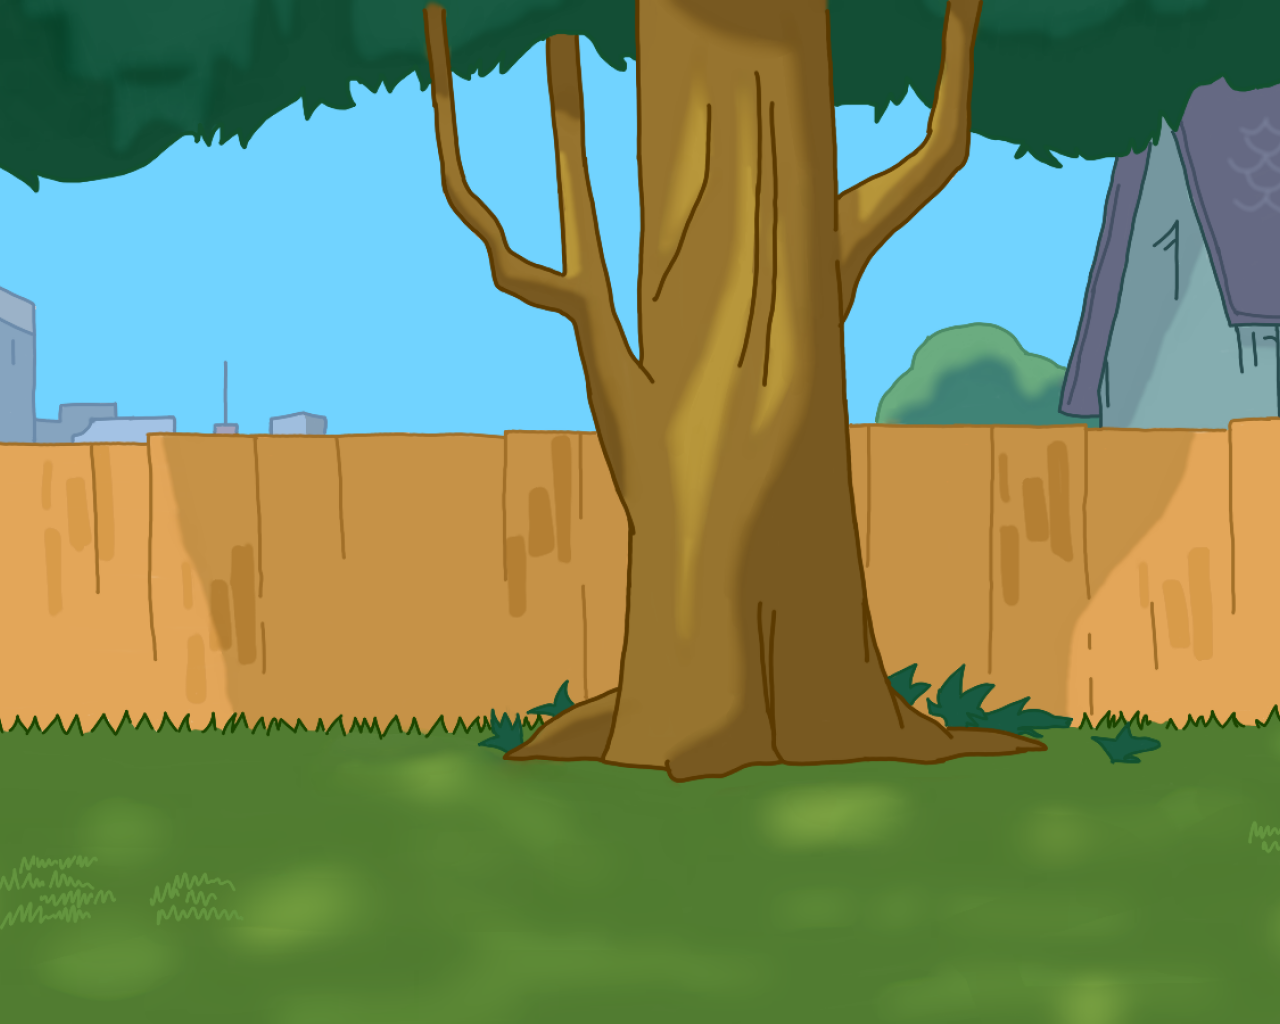 phineas_and_ferb__s_backyard_ | iKidmin:Stage Inspiration ...